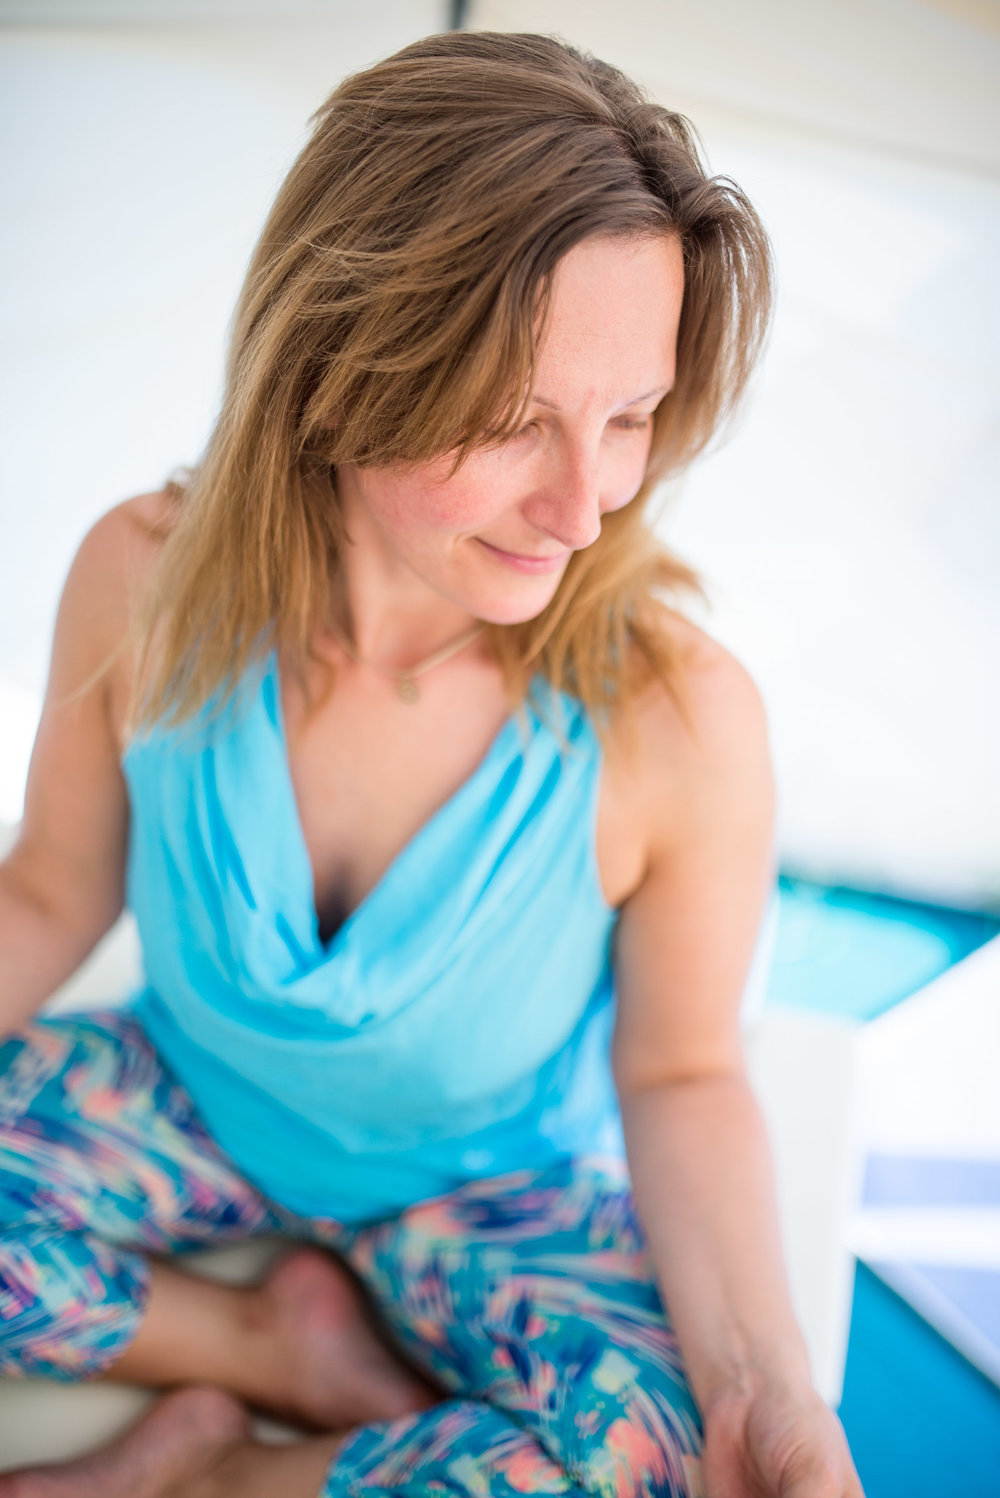 PERSONAL BRAND PORTRAIT SESSION WITH HOLISTIC MASSAGE THERAPIST FROM BRIGHTON -